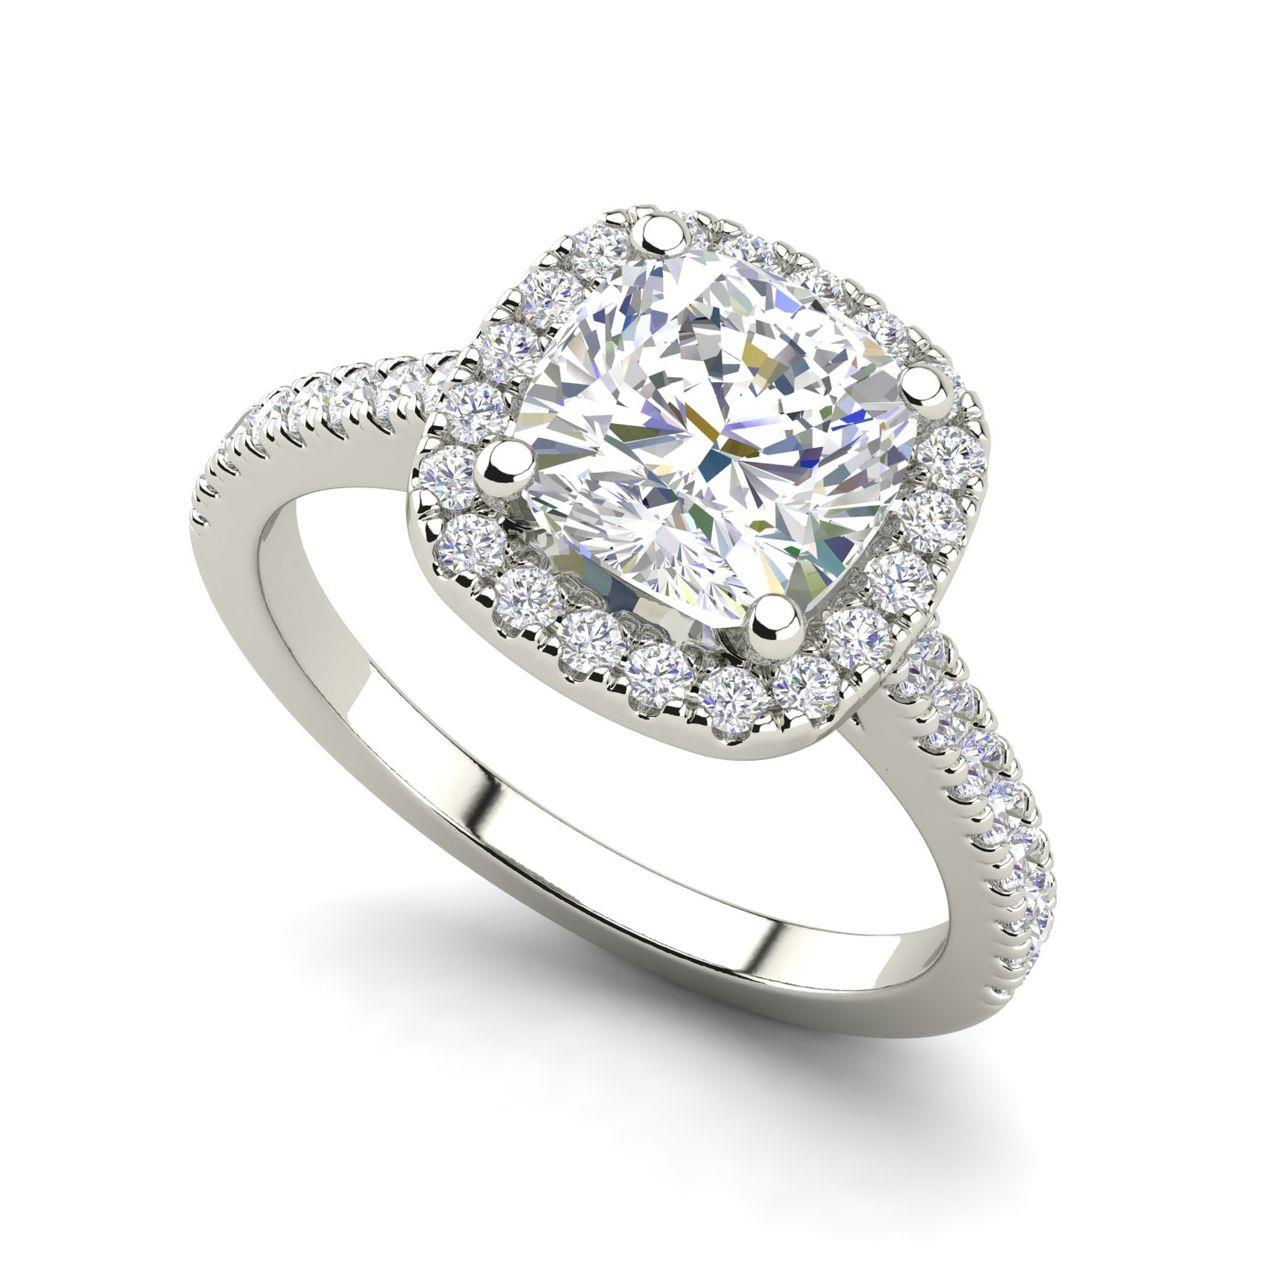 Halo Pave 0.95 Carat Round Cut Diamond Engagement Ring